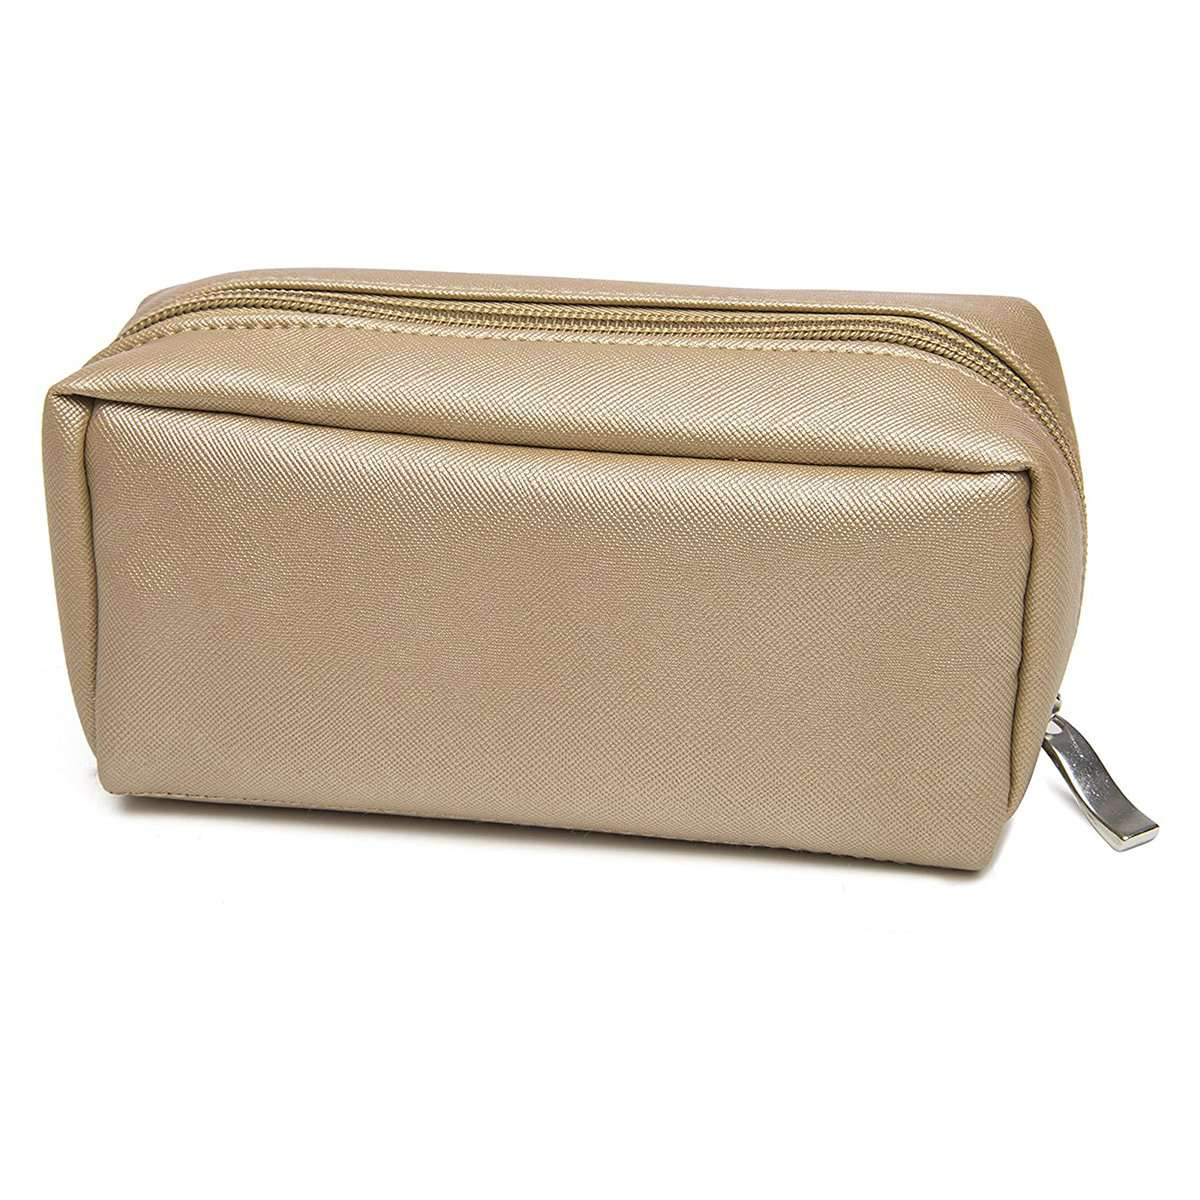 Essential Oil Carrying Case (Metallic Gold) - Your Oil Tools